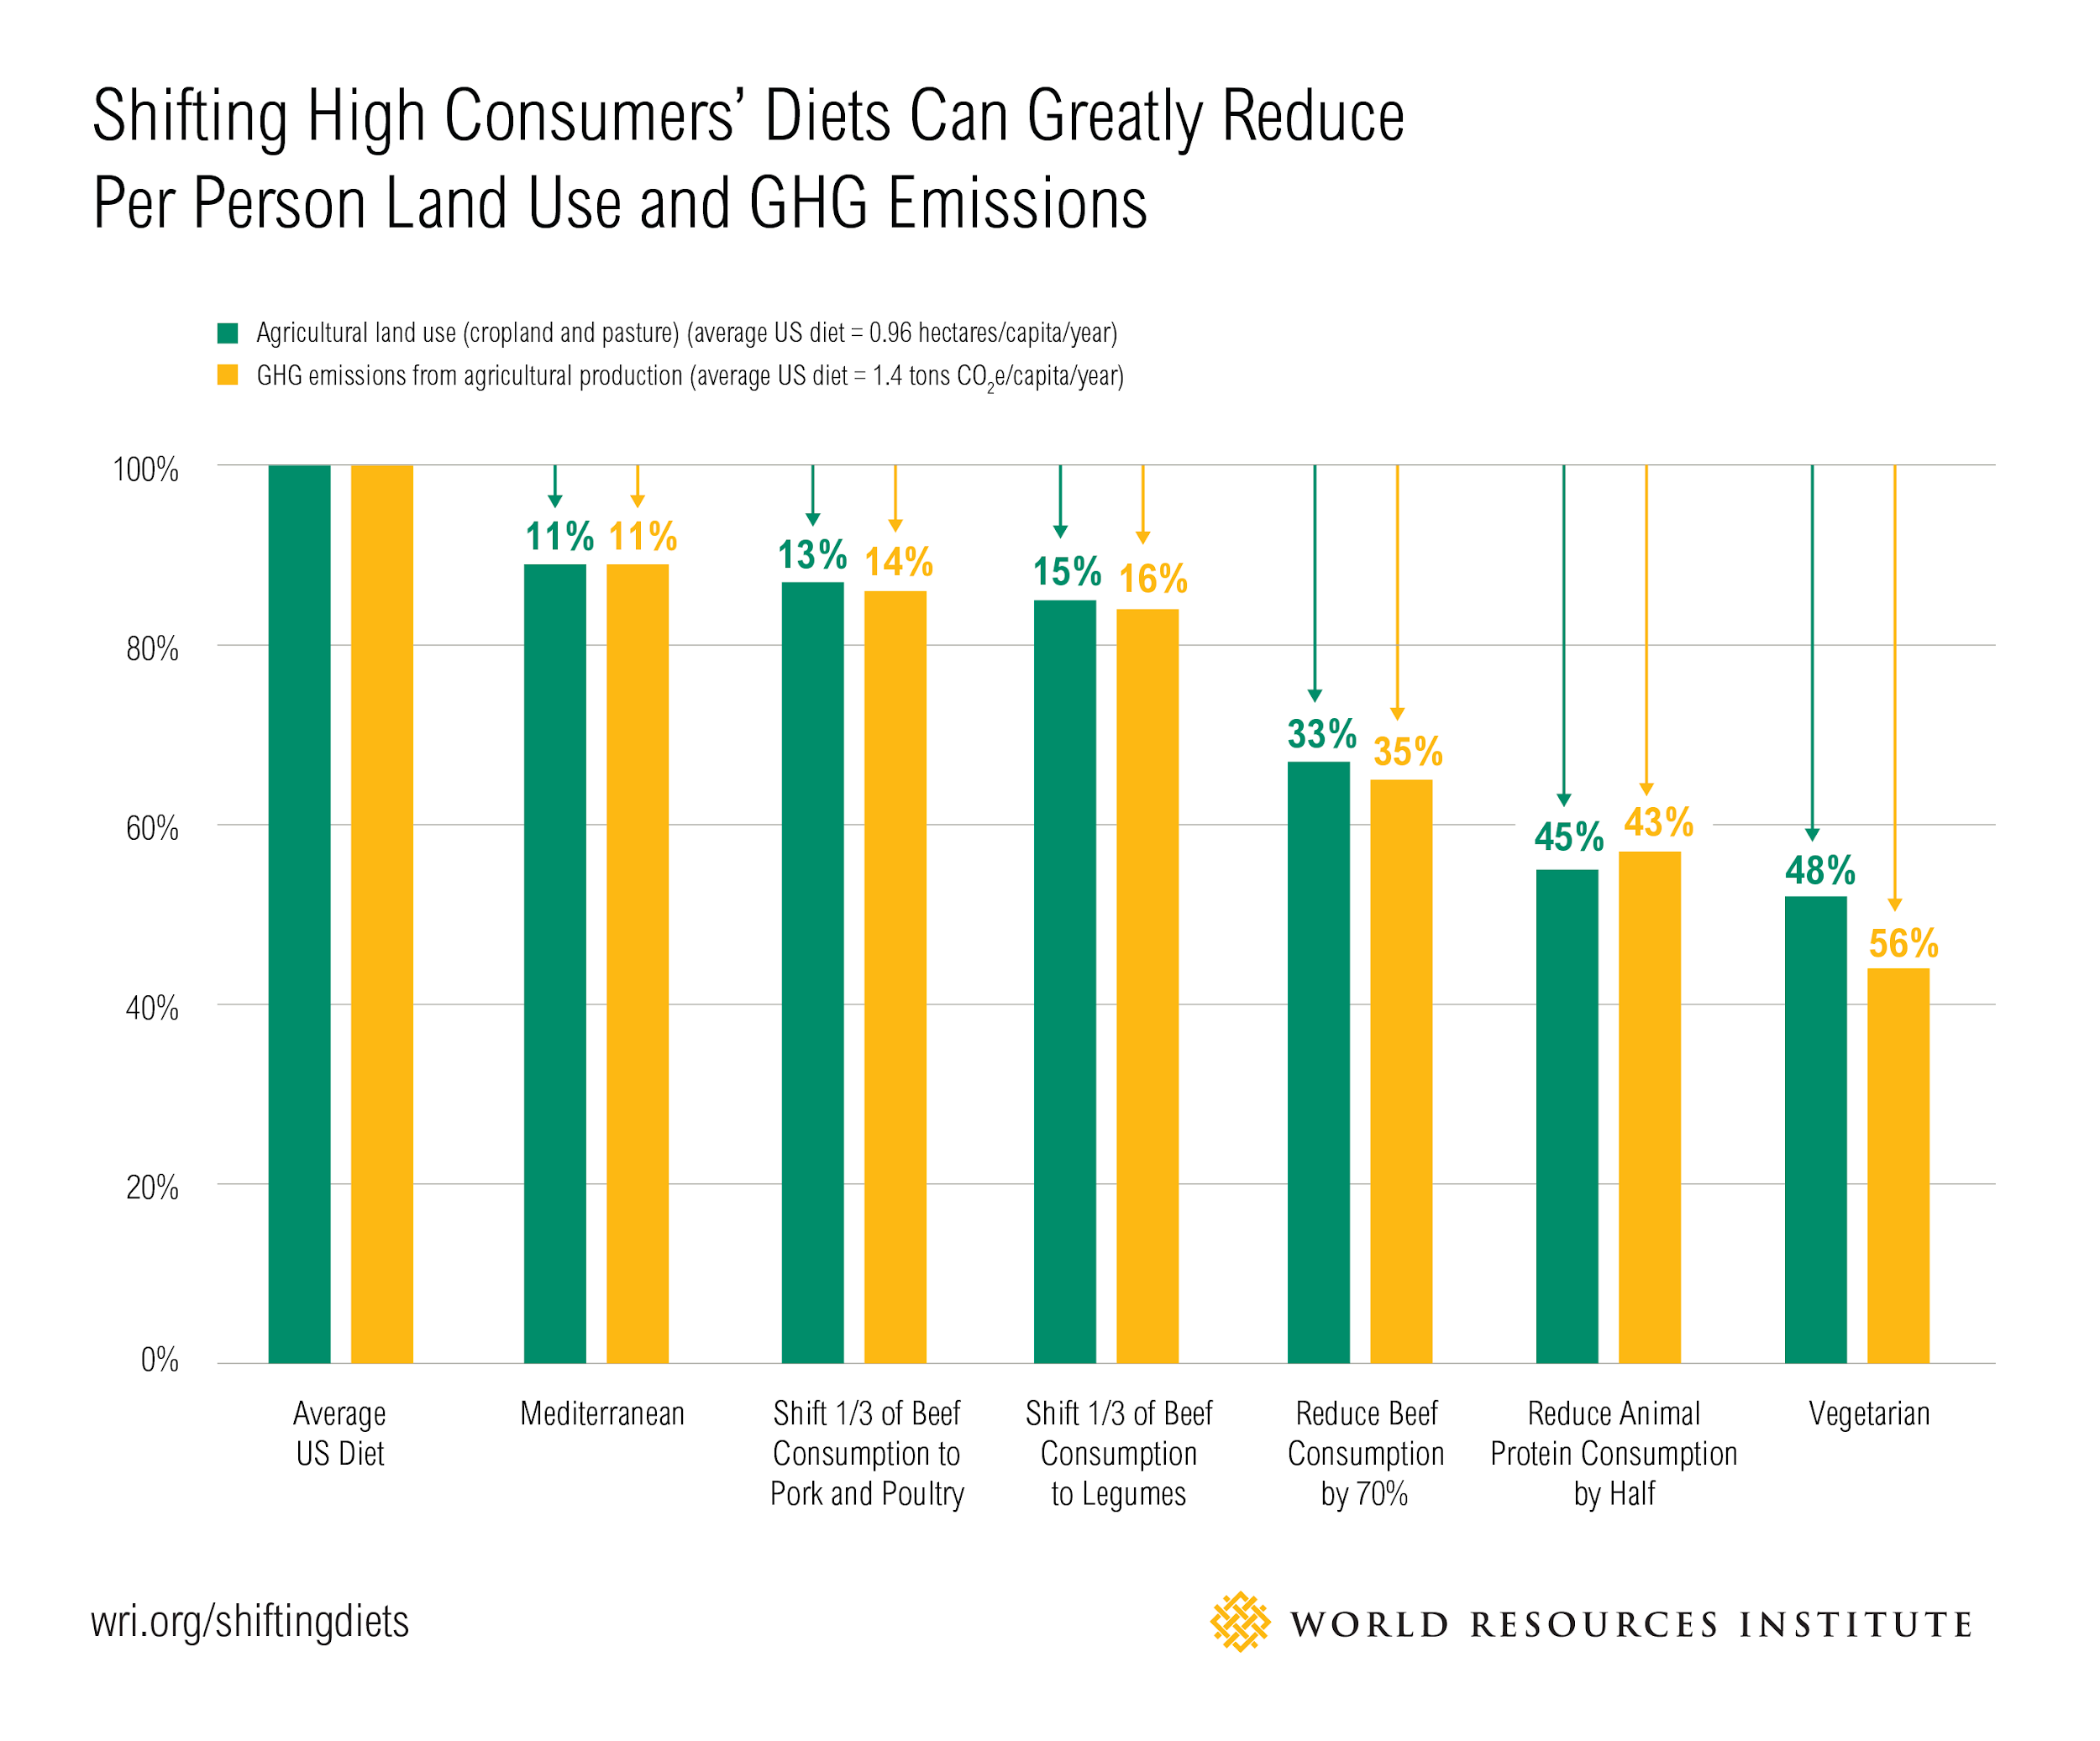 The image shows a bar graph showing how dietary shifts can reduce agricultural land use and greenhouse gas emissions. The average US diet is set at 100%. Shifting to the Mediterranean diet reduces both land use and GHG by 11%. Shifting 1/3 of beef consumption to pork and poultry reduces land use and GHG emissions by 13% and 14%, respectively. Shifting 1/3 of beef consumption to legumes reduces these values by 15% and 16%. Reducing beef consumption by 70% reduces values by 33% and 35%. Reducing animal protein consumption by half reduces values by 45% and 43%. Becoming vegetarian reduces values by 48% and 56%.